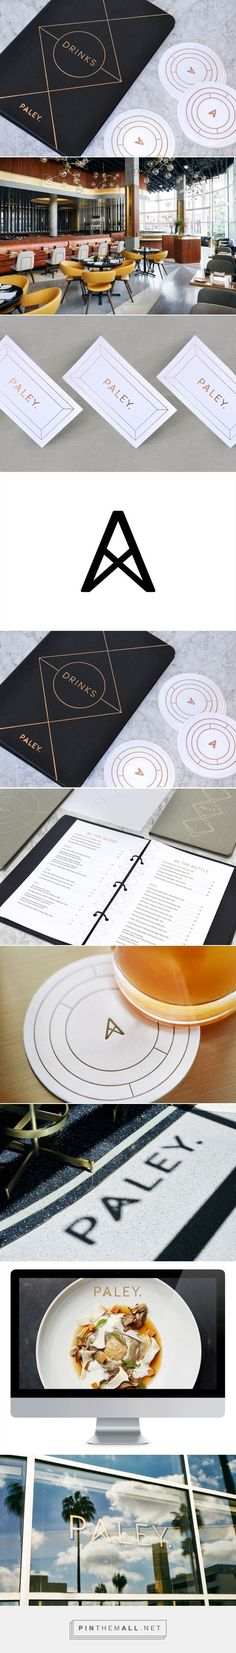 New Logo & Brand Identity for Paley by Mucca — BP&O... - a grouped images picture / Branding / Idea / Inspiration / Brand / Design / Logo / Restaurant / Cafe / Geometric / Line Art / Minimalist / Black / Copper / White / Star / Elegant / Modern / Simple / Clean / Pentagram / Scandinavian / Nordic